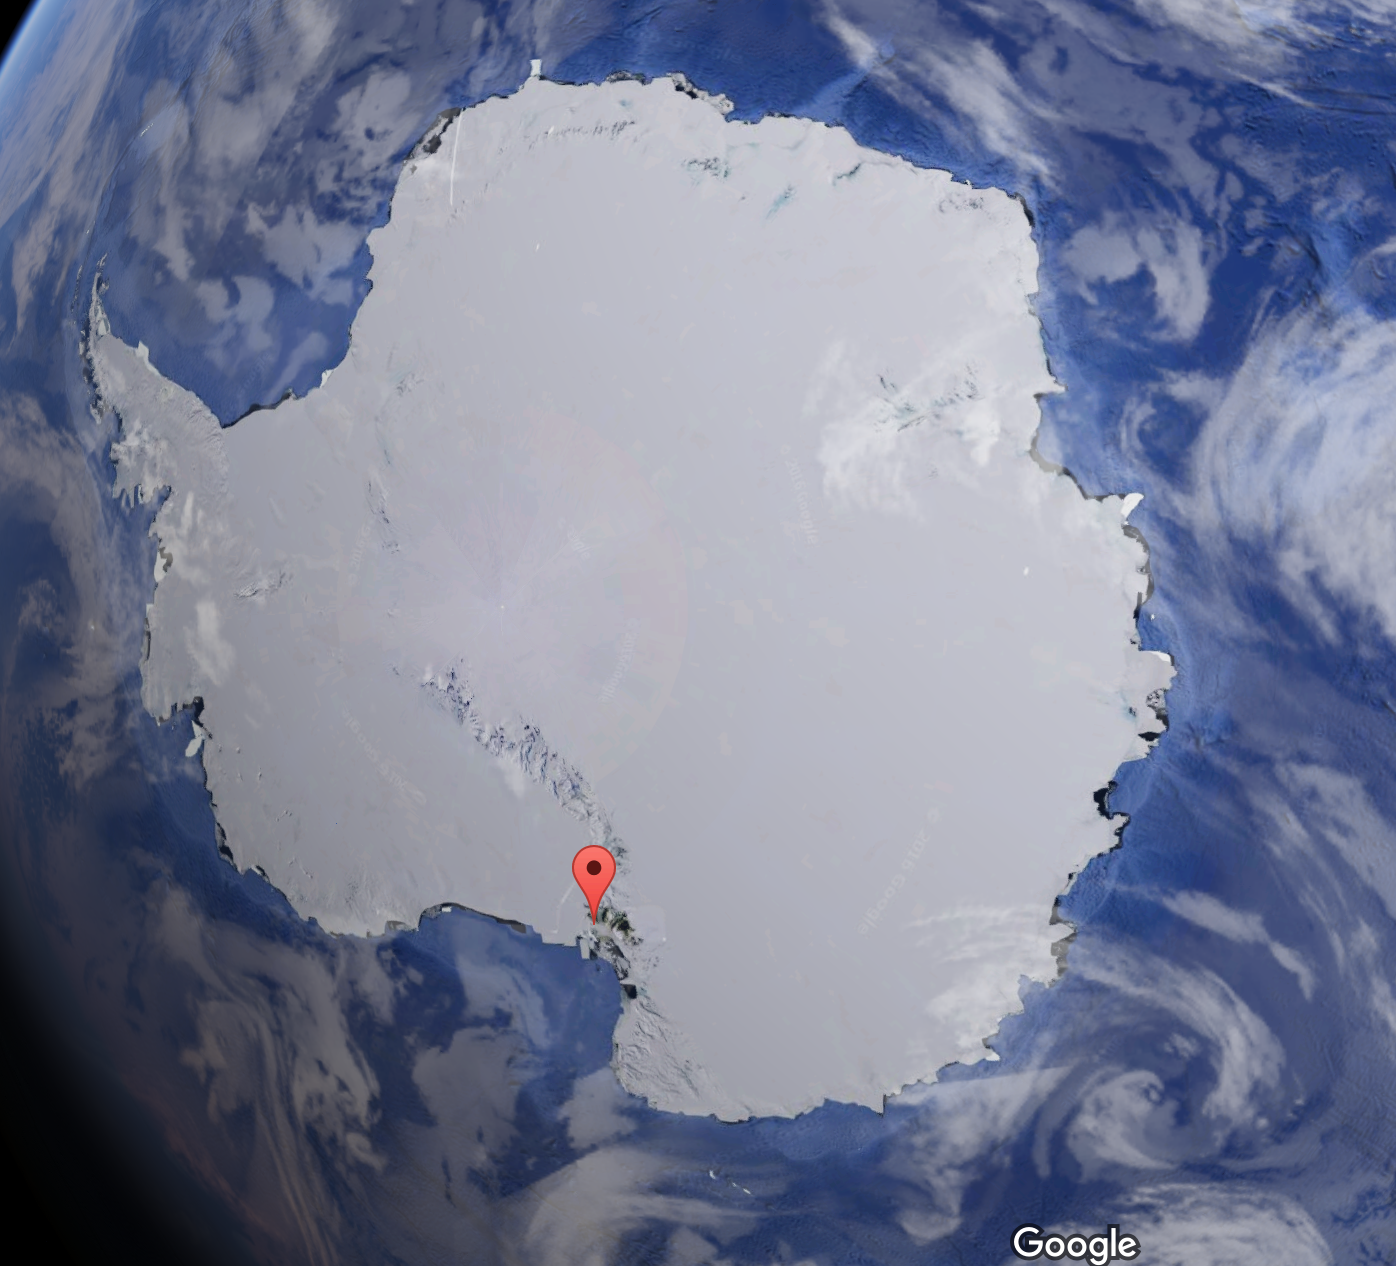 Map of Antarctica with McMurdo Station flagged (courtesy of Google Earth)